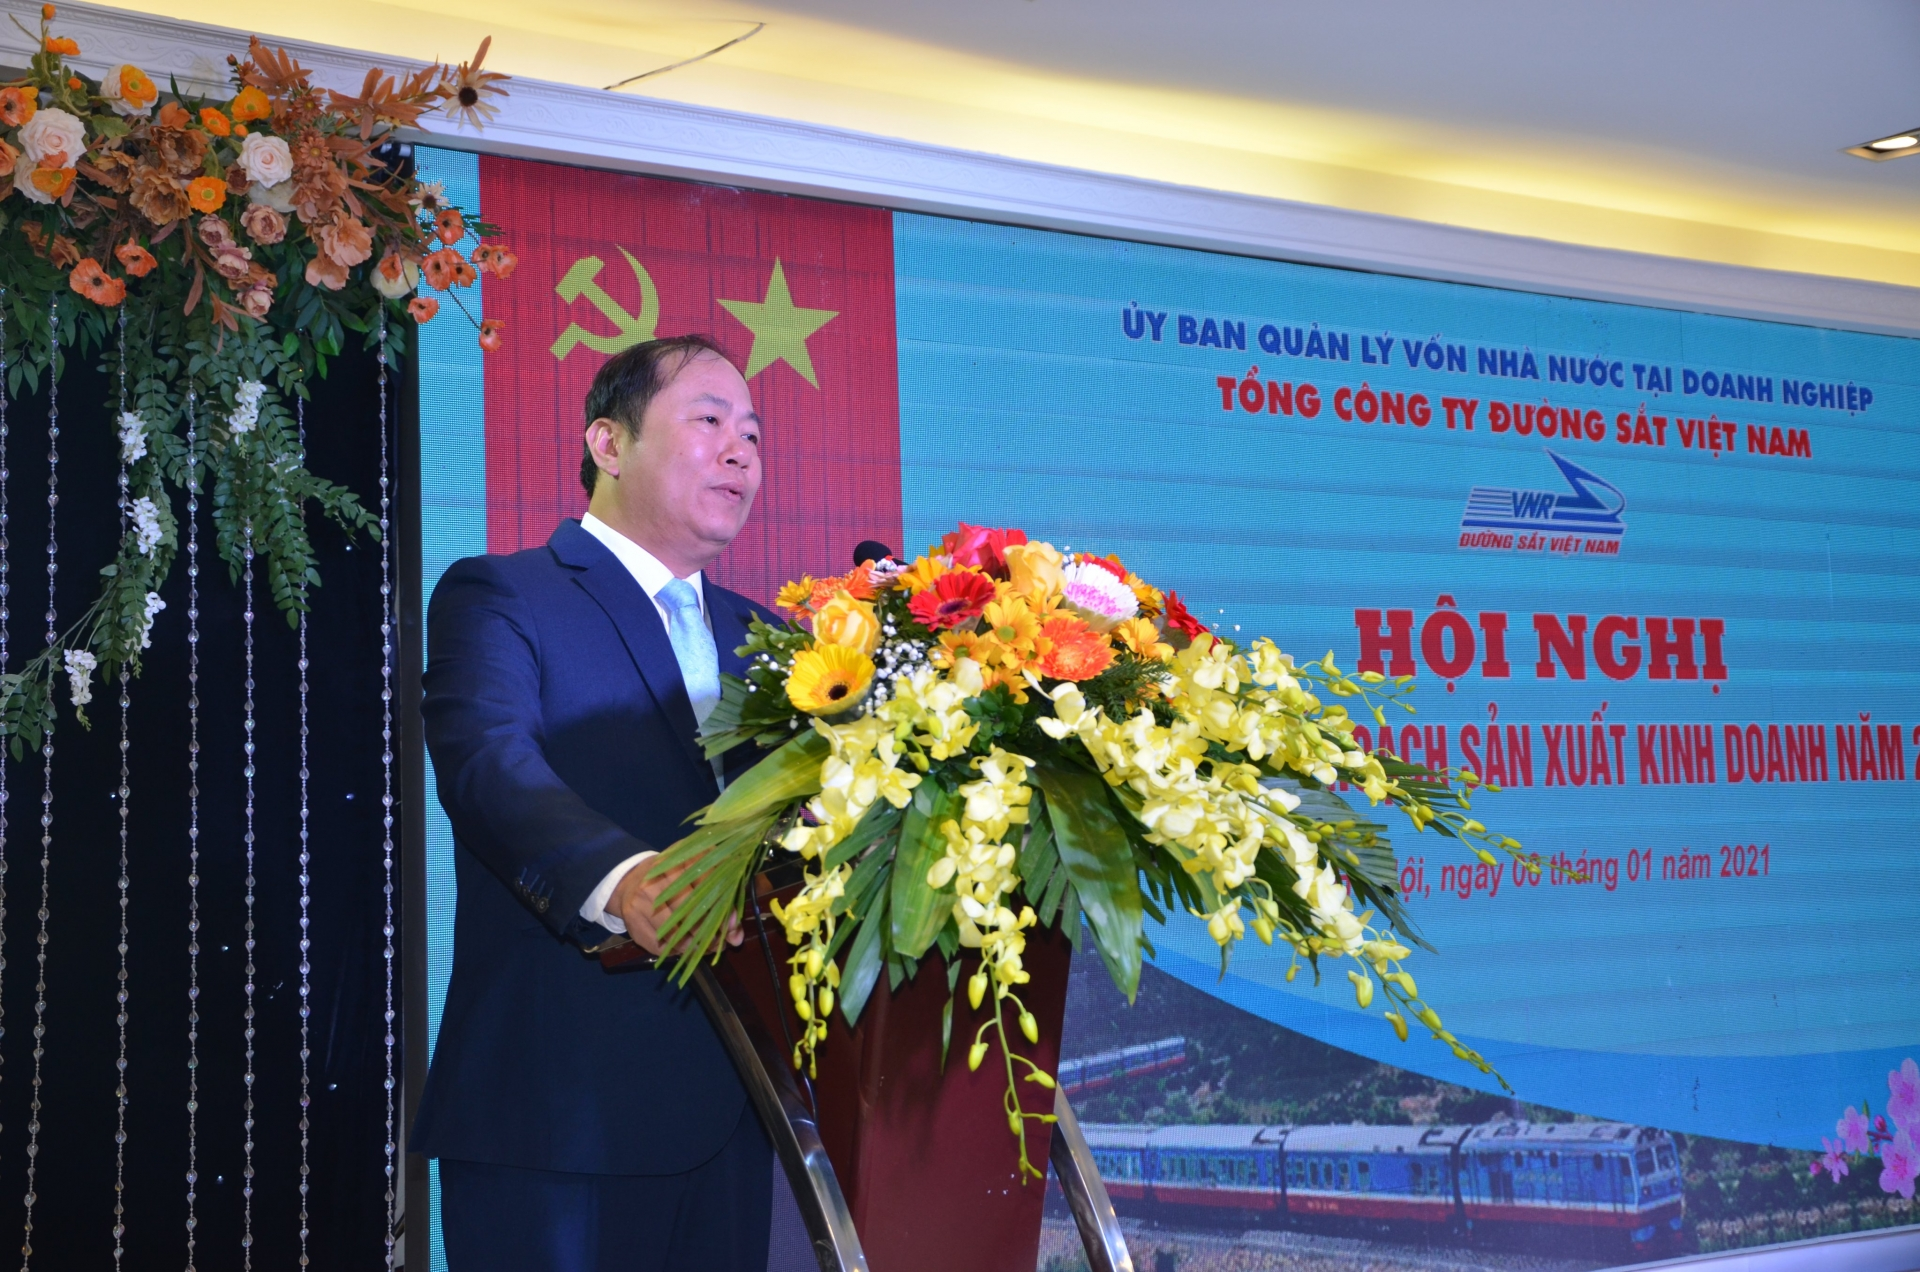 Vietnam Railways reports loss in 2020, urging clearance of legal problems